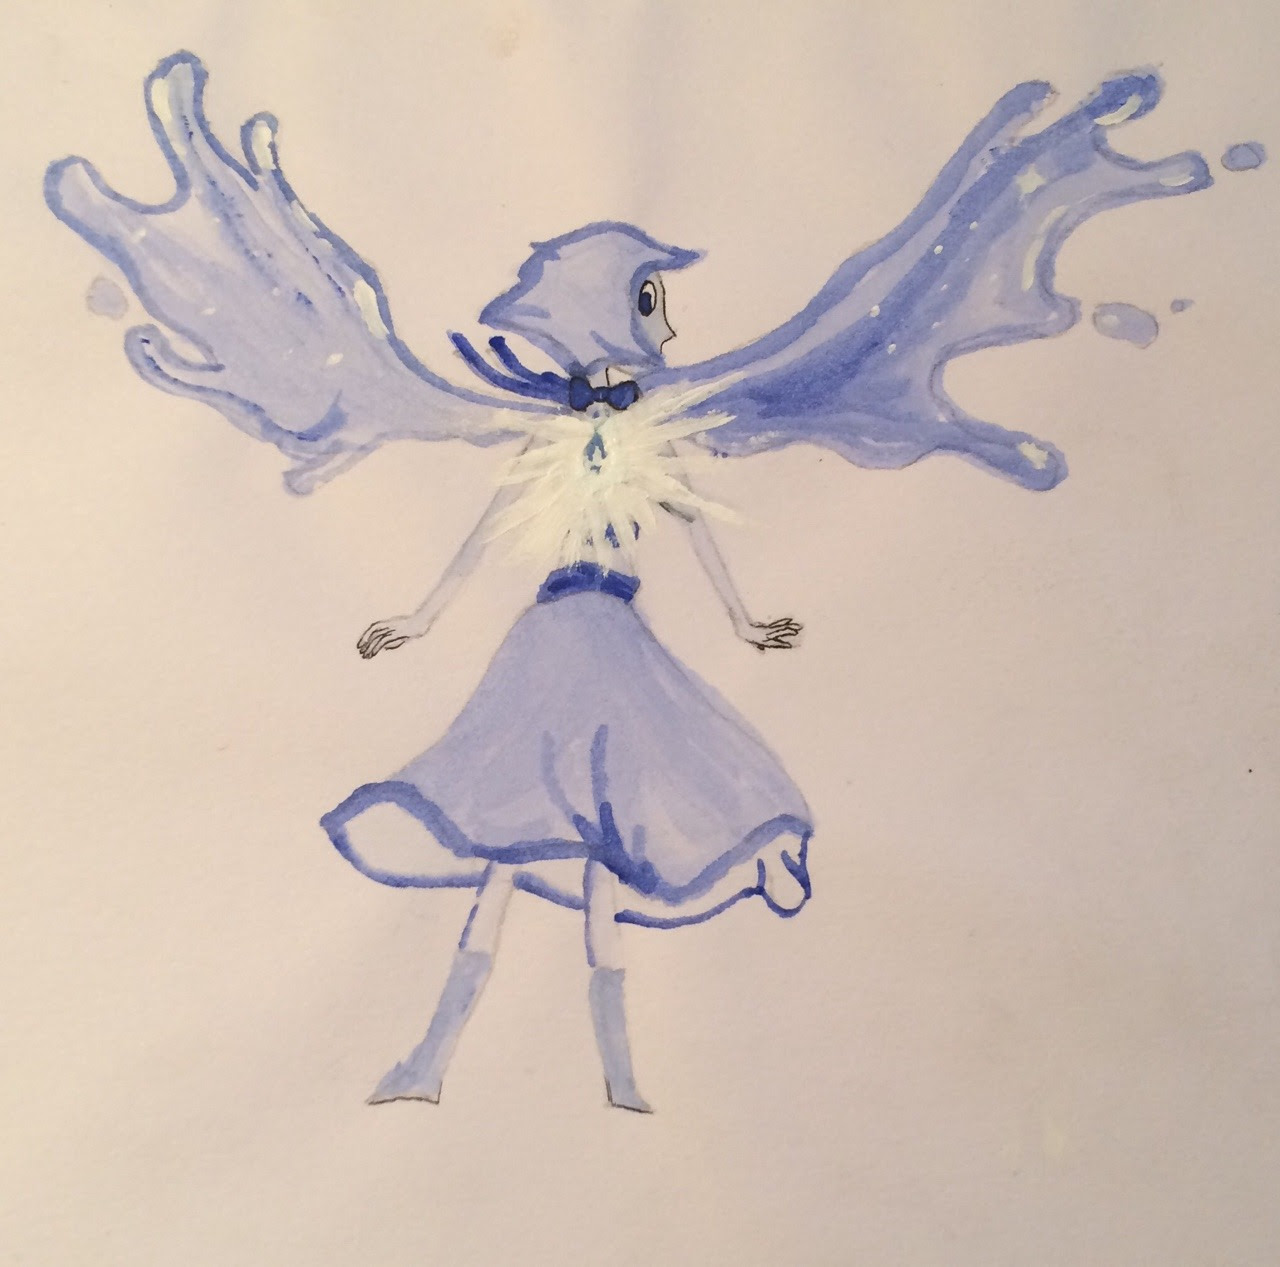 Shitty Lapis watercolour because I had nothing better to do. Happy New year everyone!